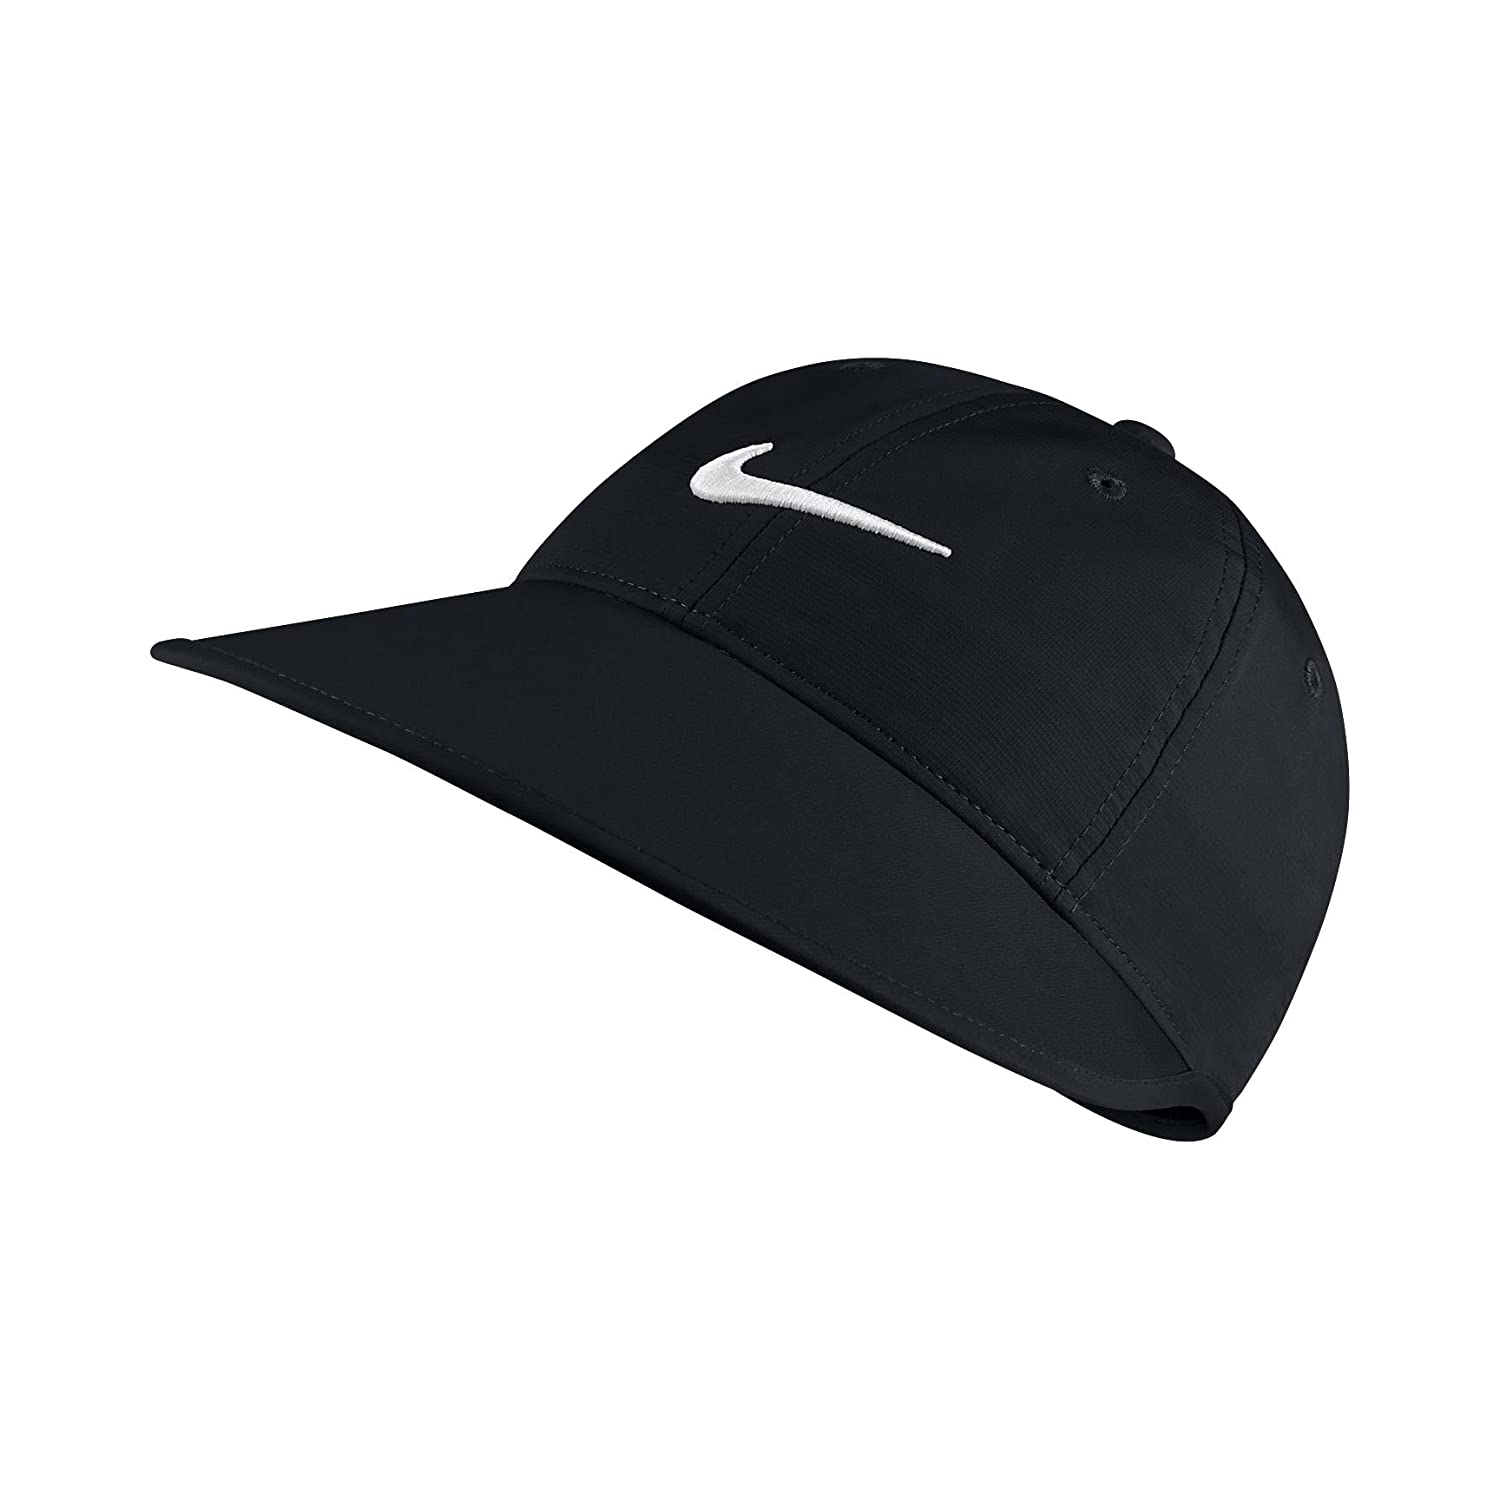 e12b966ca79189 Amazon.com: Nike Women's Big Bill Cap (Variety of Colors Available)  (Black): Clothing